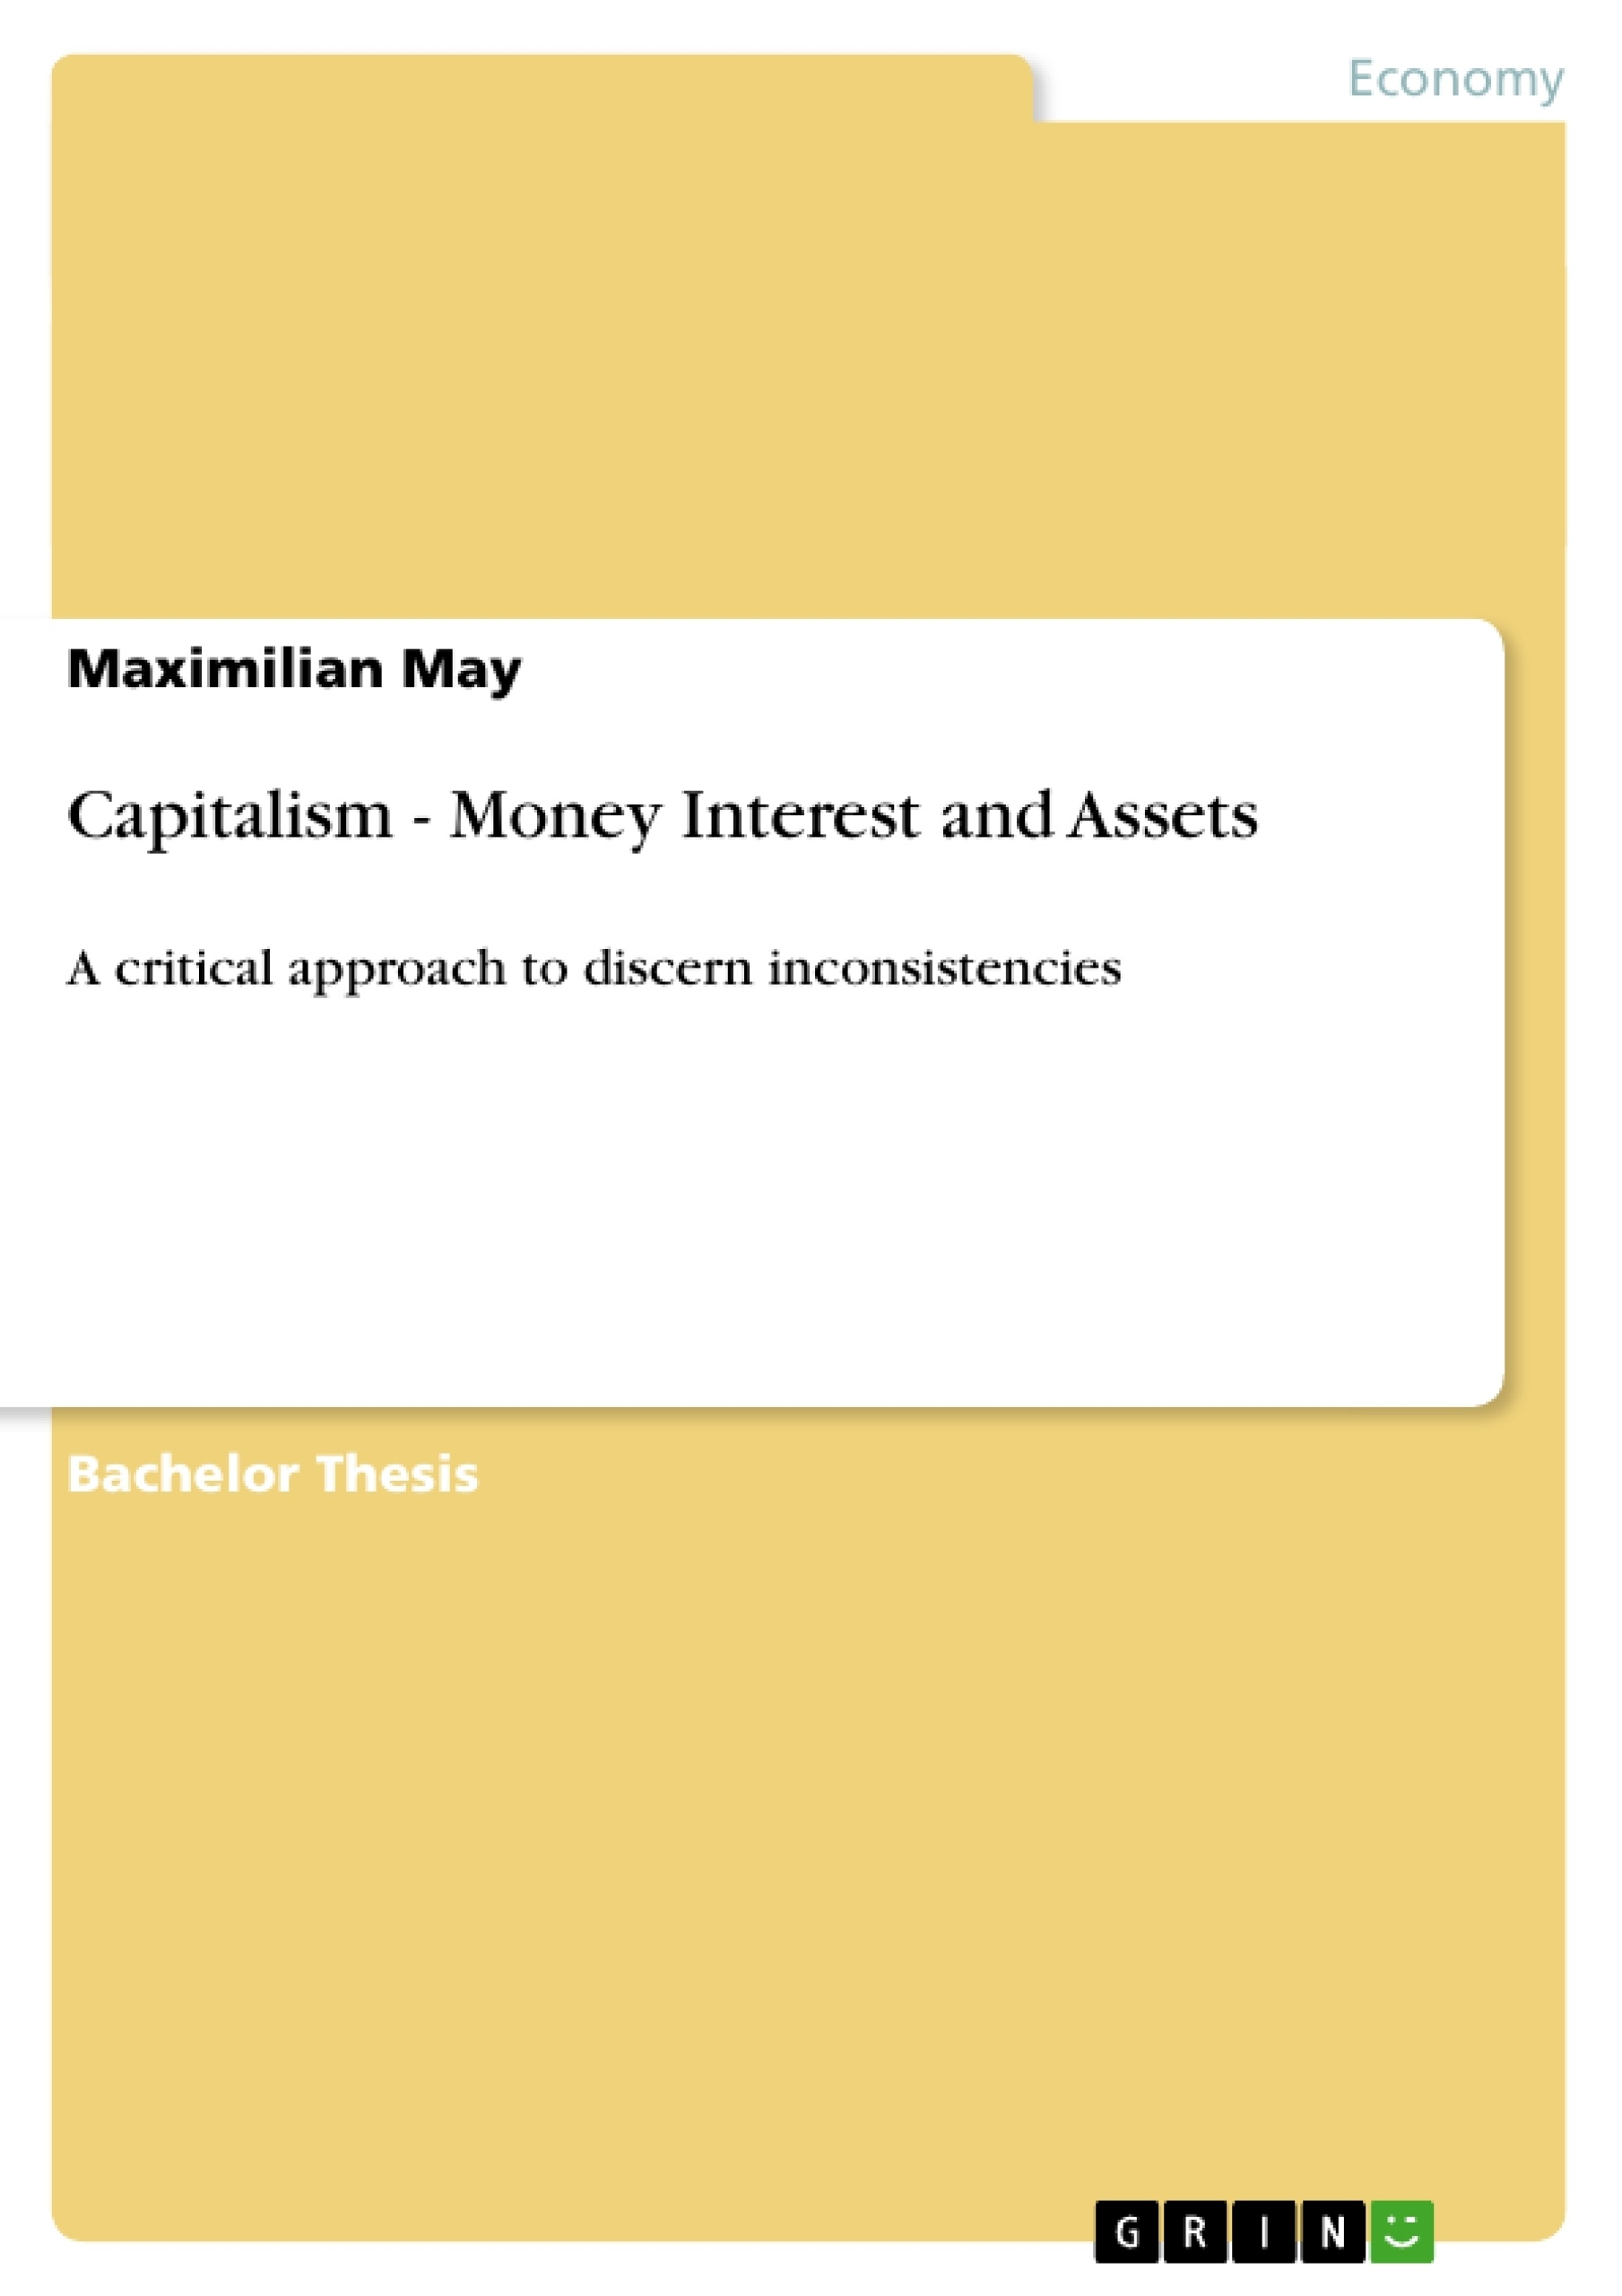 Title: Capitalism - Money Interest and Assets